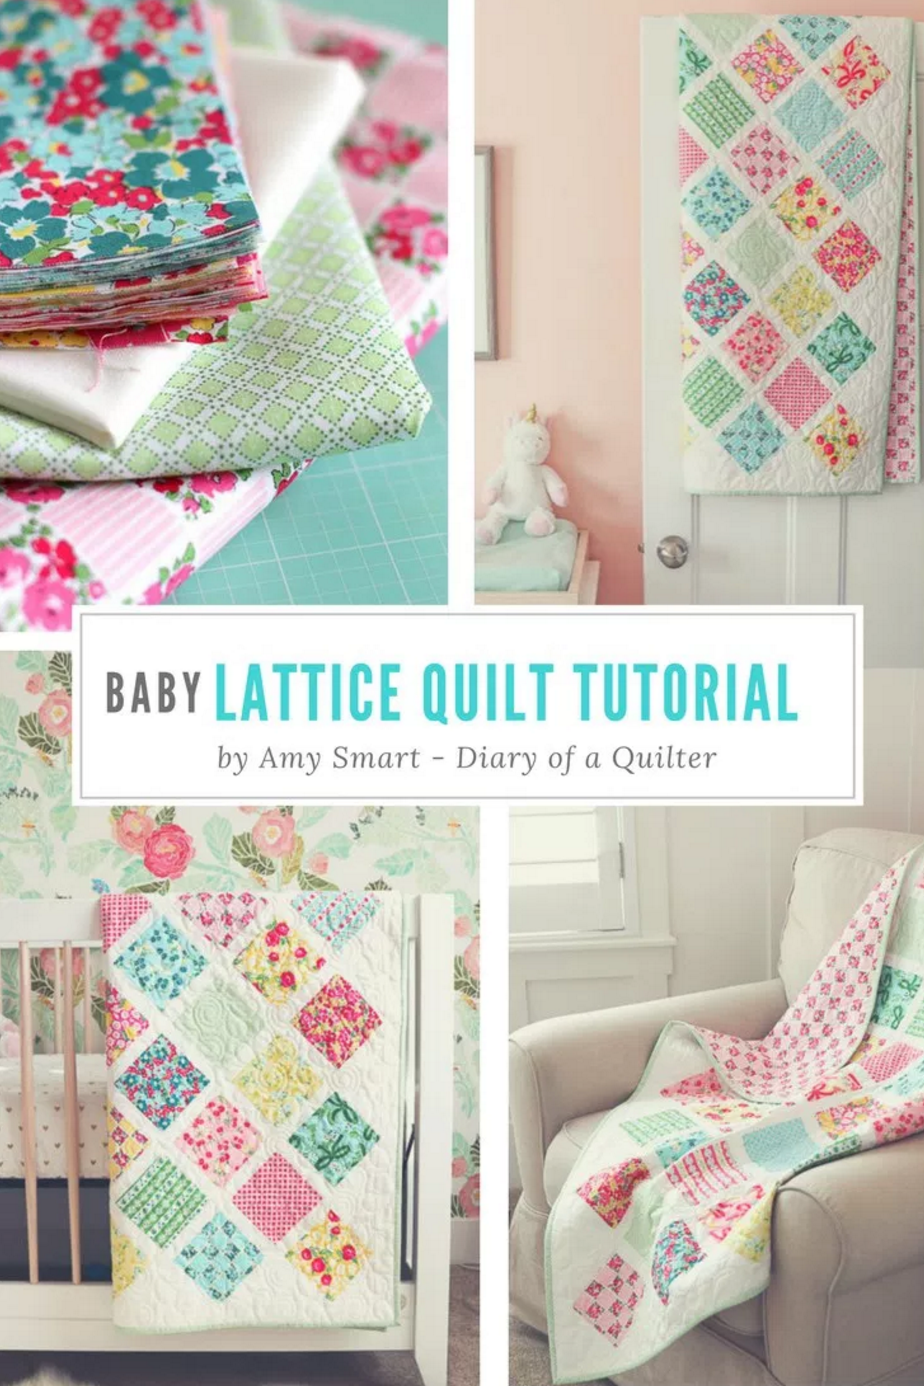 Dainty darling fabric tour day 4 with amy smart from diary of a diy your photo charms compatible with pandora bracelets make your gifts special make your life special baby quilt tutorial perfect for using charm baditri Choice Image